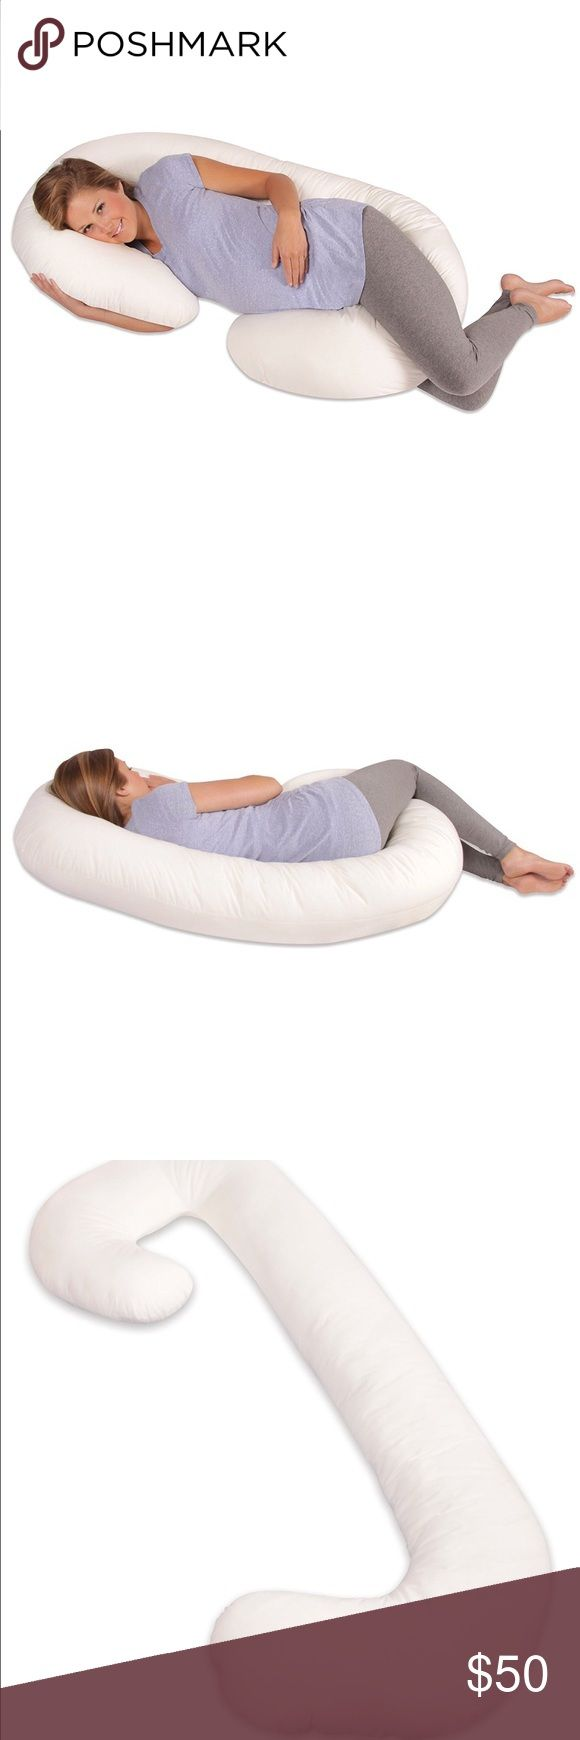 Pin By 1024 On Pillow Pillows Pregnancy Pillow Pillow Cases